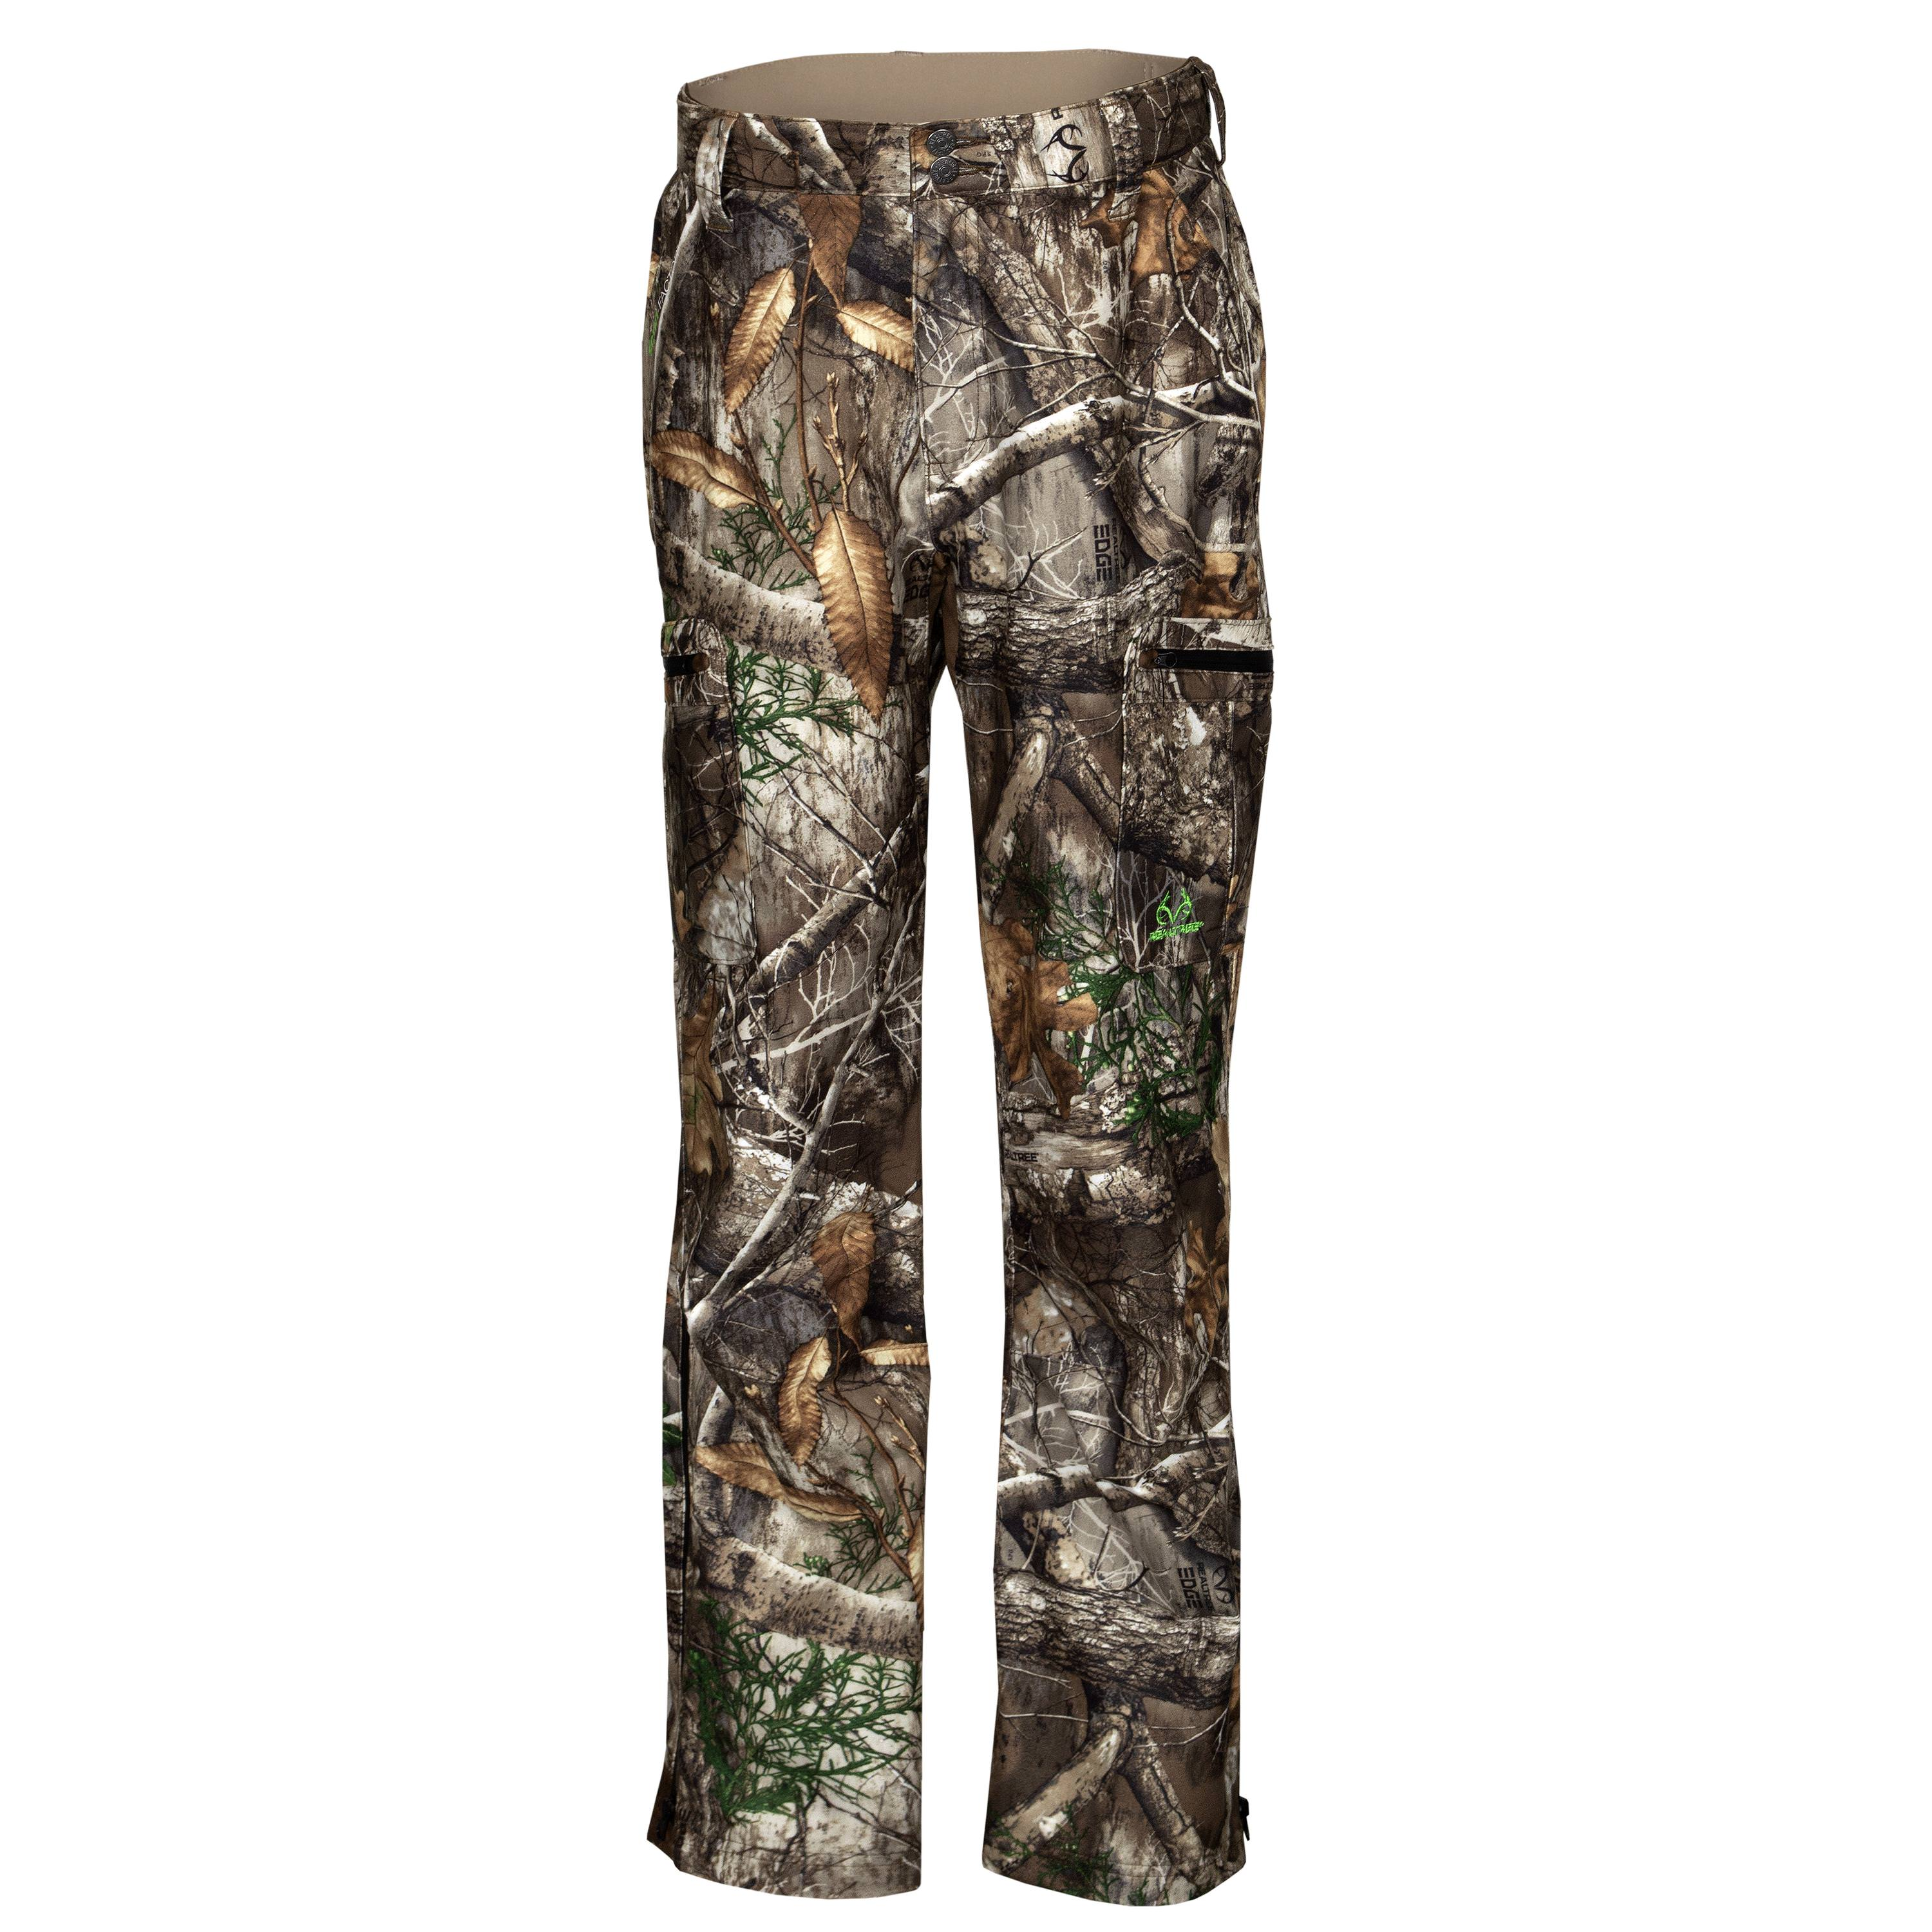 YOUTH REALTREE CAMO SCENT CONTROL HUNTING PANT